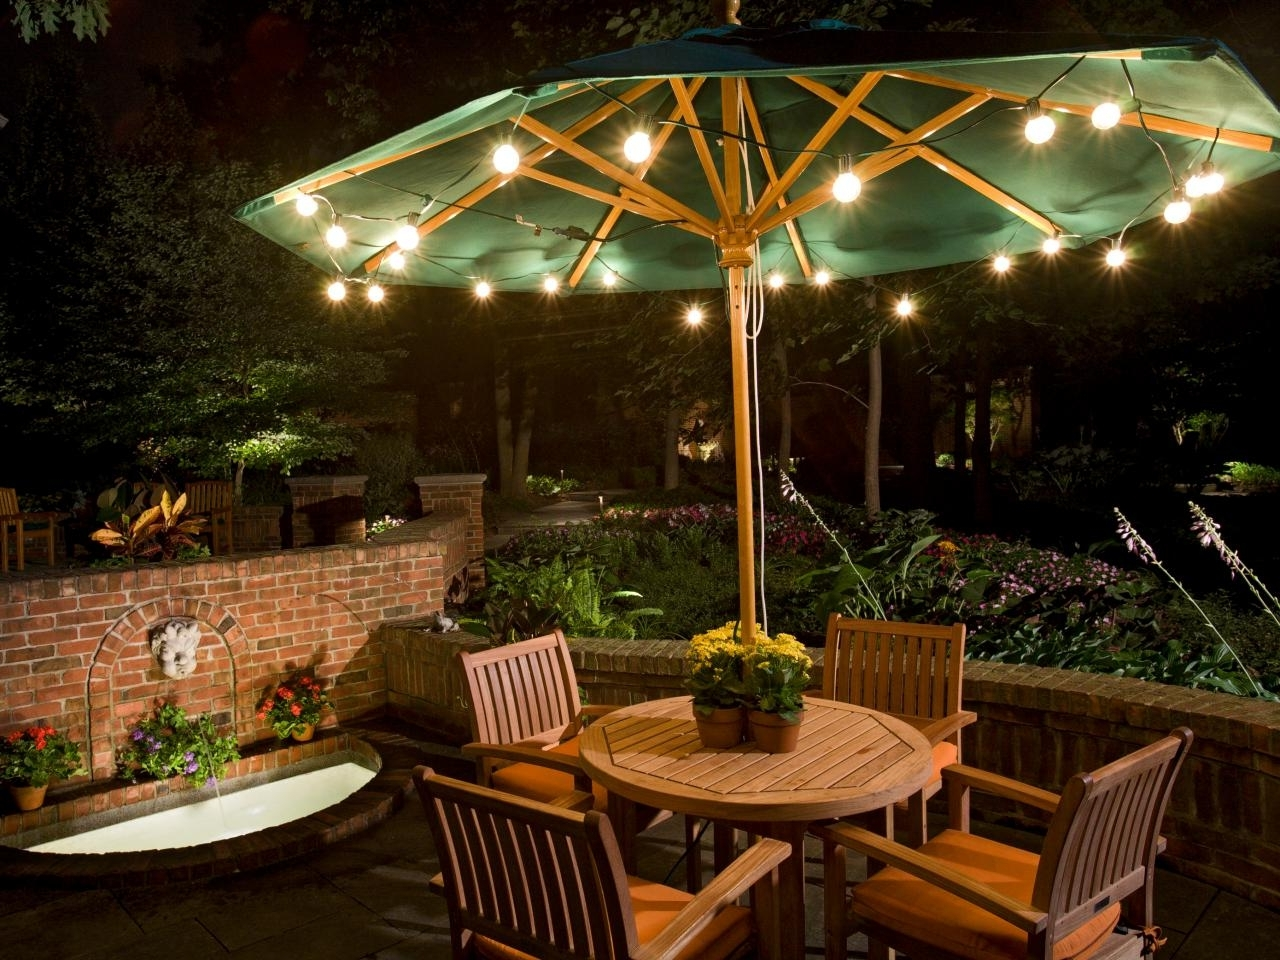 Hgtv's Intended For Outdoor Hanging String Lanterns (View 10 of 20)